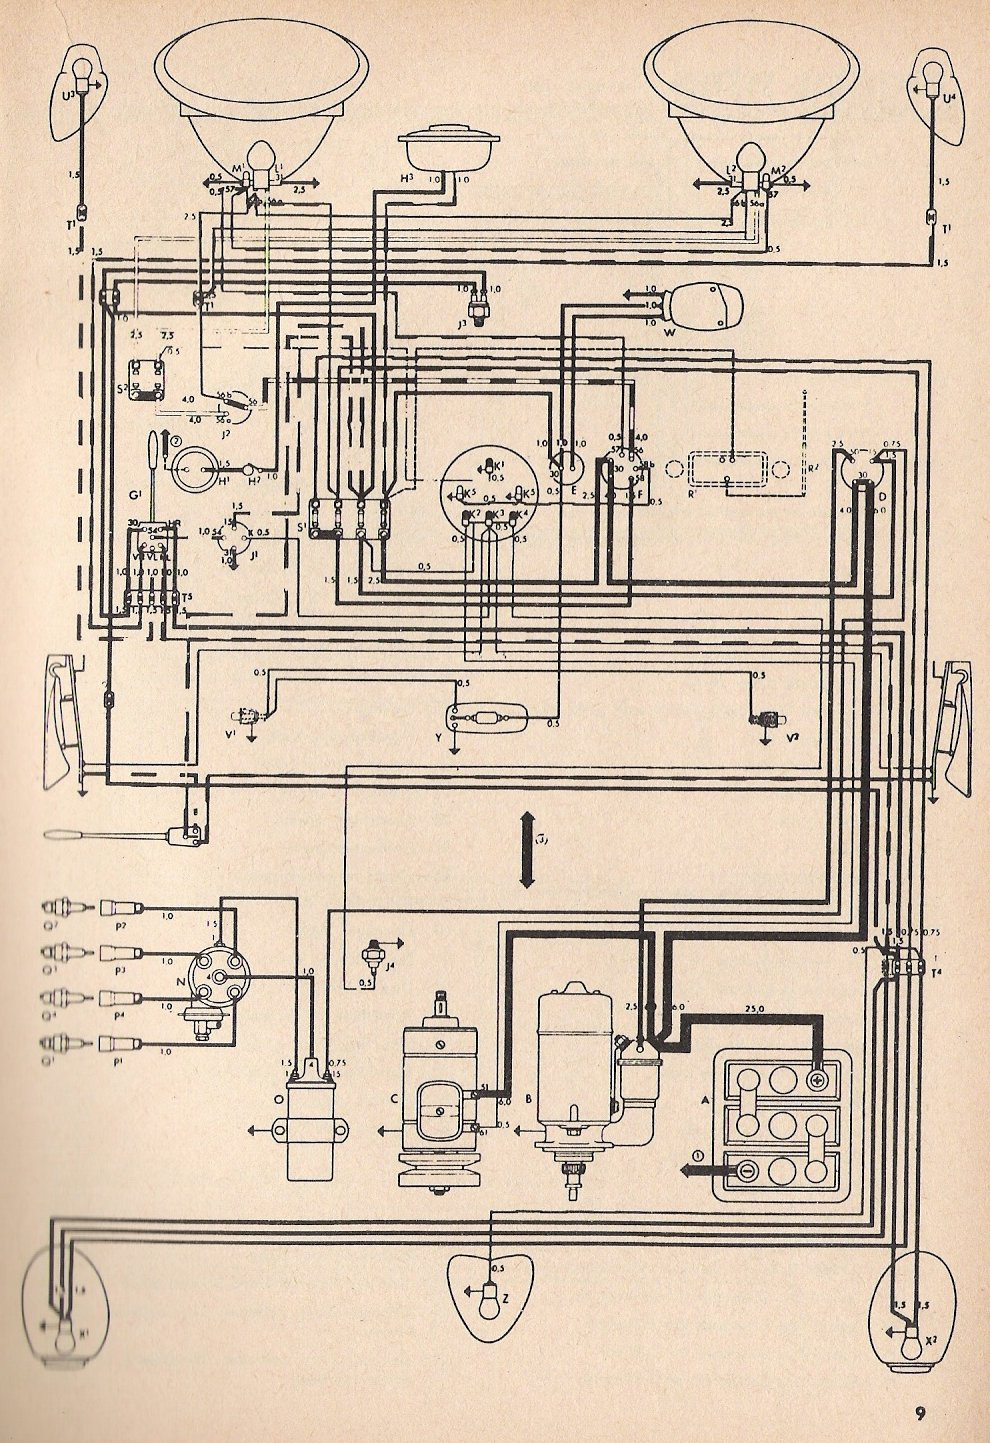 Type 1 Wiring Diagrams 2008 Dodge Sprinter Schematic